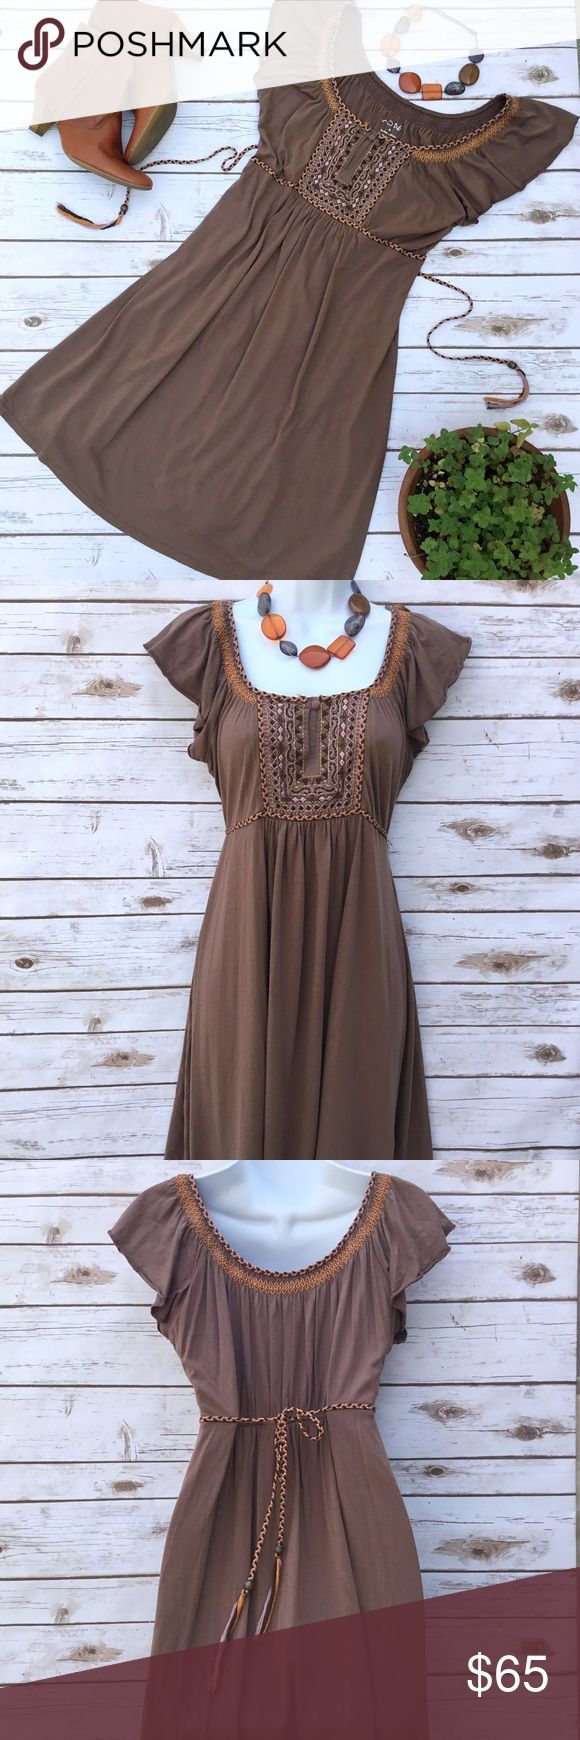 Latin Inspired Embroidered BOHO Festival Dress Lovely brown dress with embroidery along the neckline and in front. Brown and orange braided cord ties in back for a fitted look. 55% cotton and 45% modal. Size M, measures about 17.5 inches across from armpit to armpit and approximately 35 inches in length. Dresses